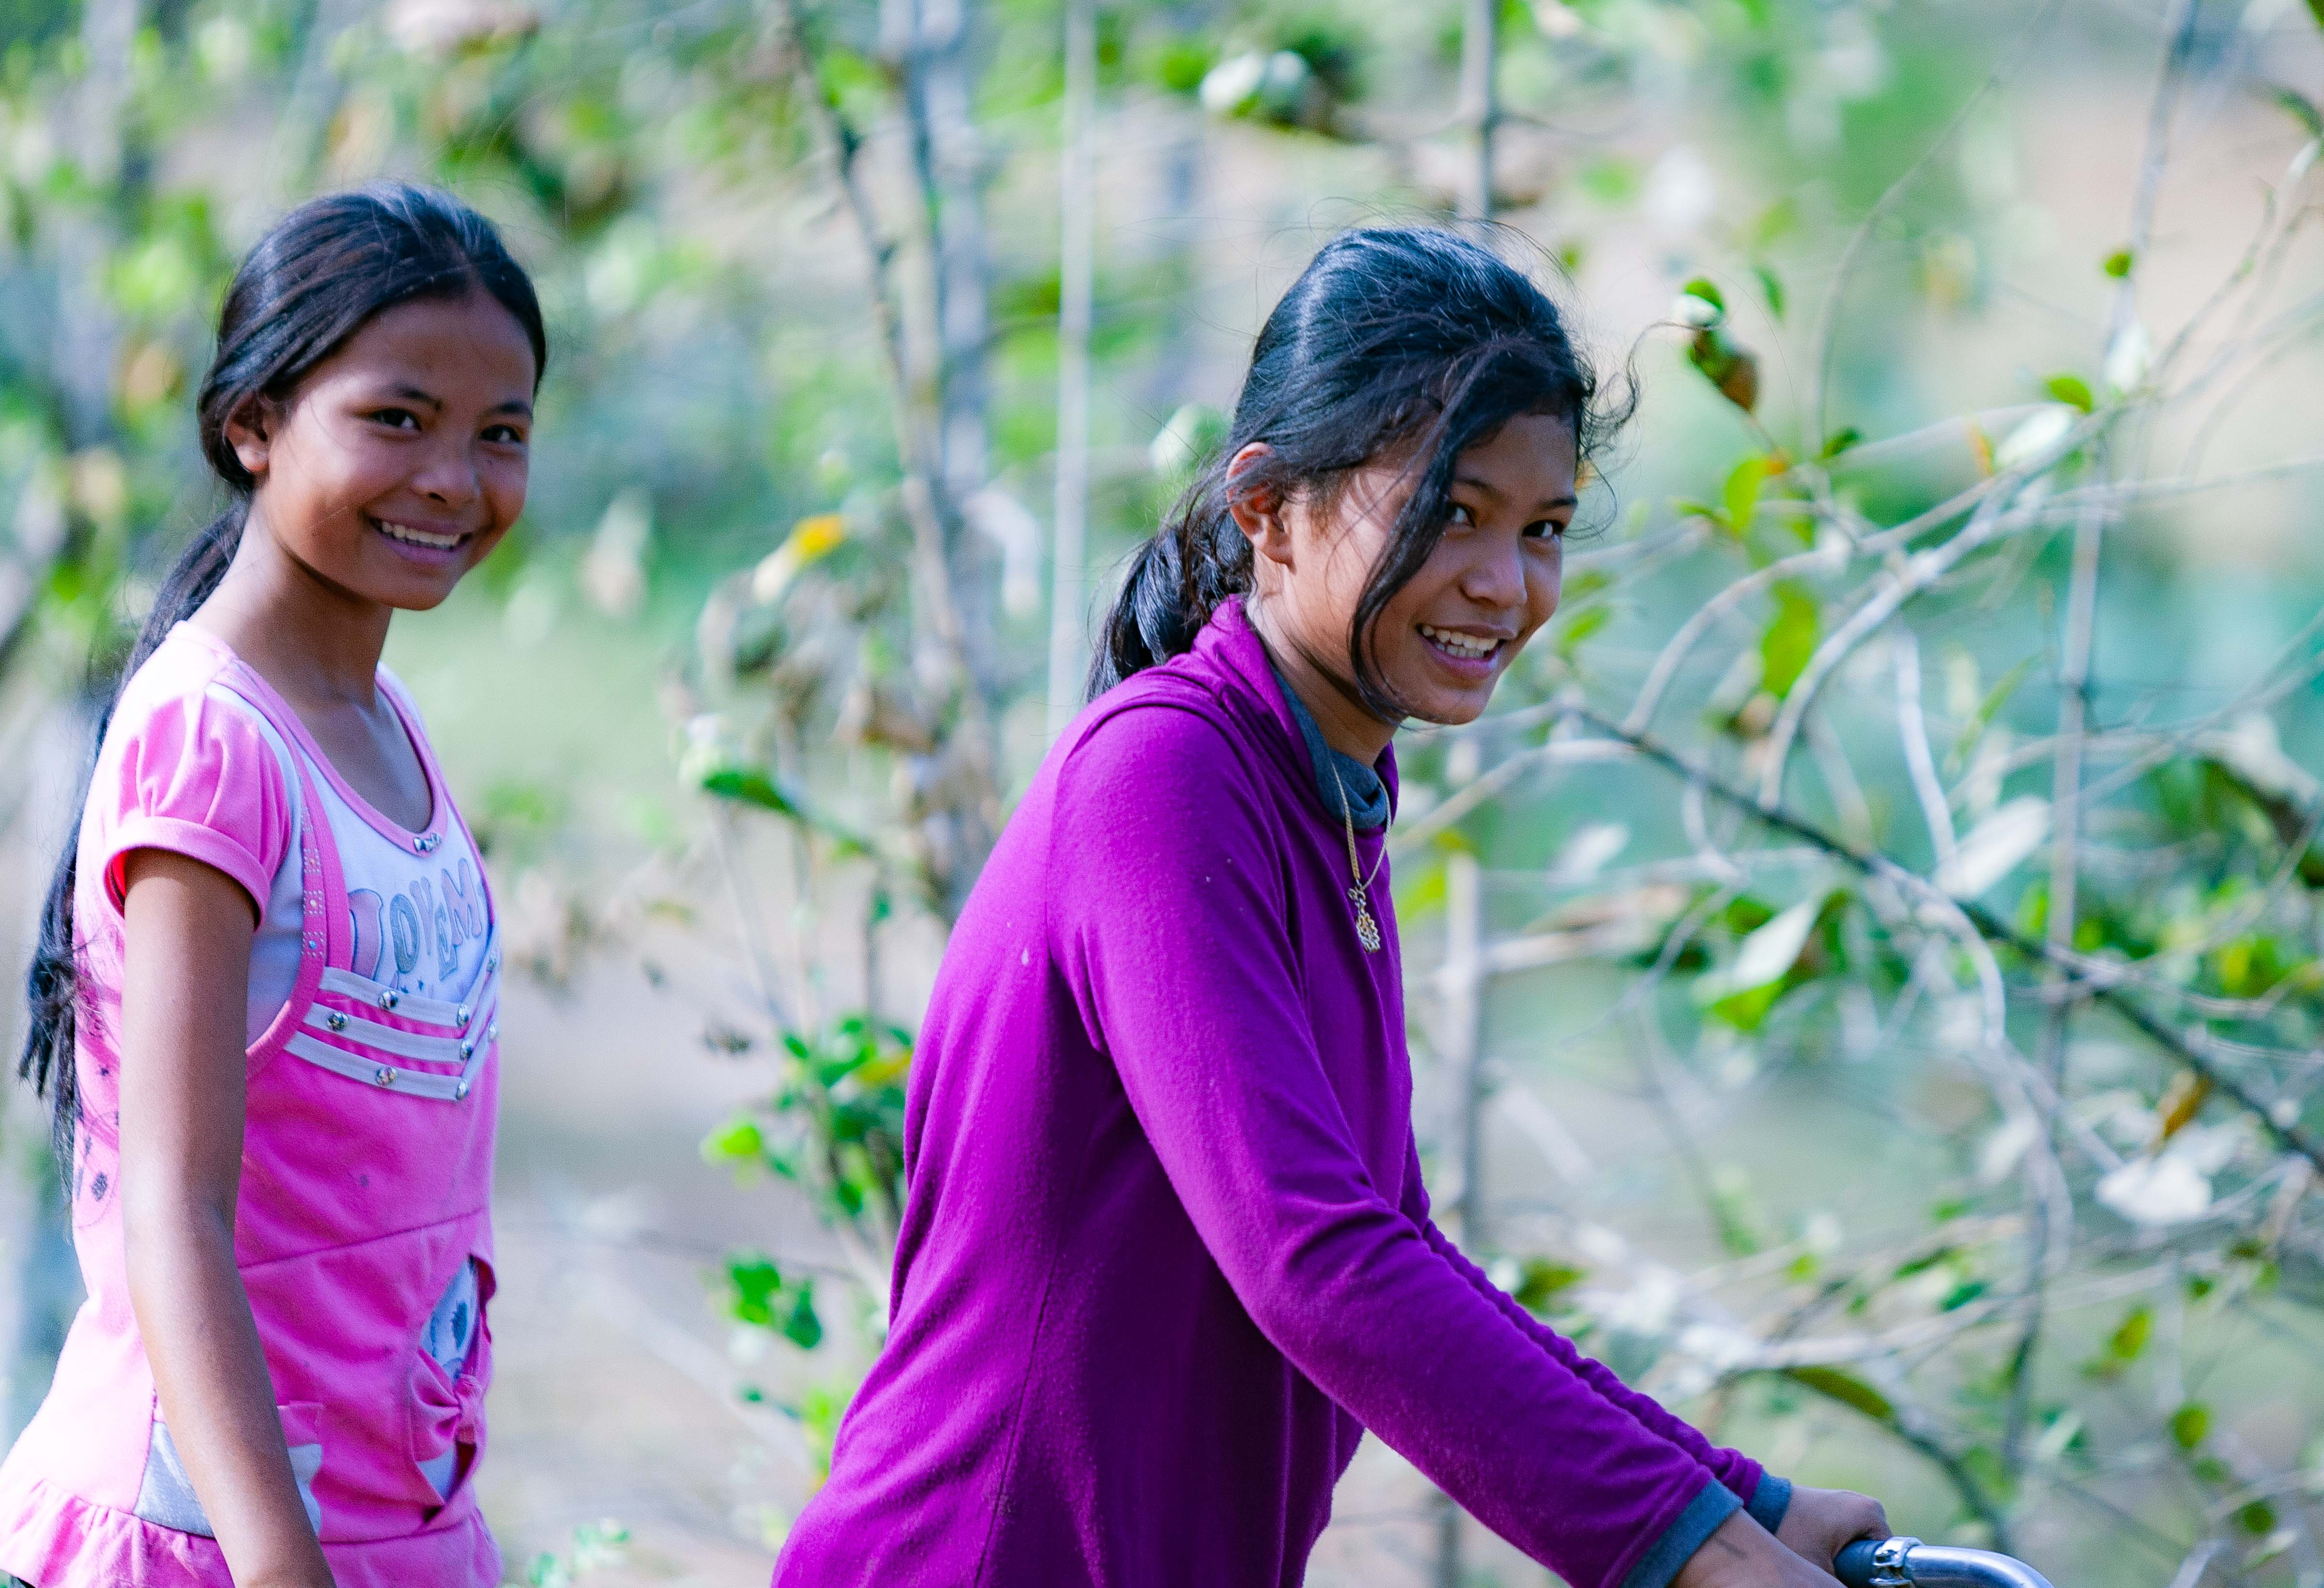 Cambodia, Prey Veaeng Prov, Country Girls, 2010, IMG 5244